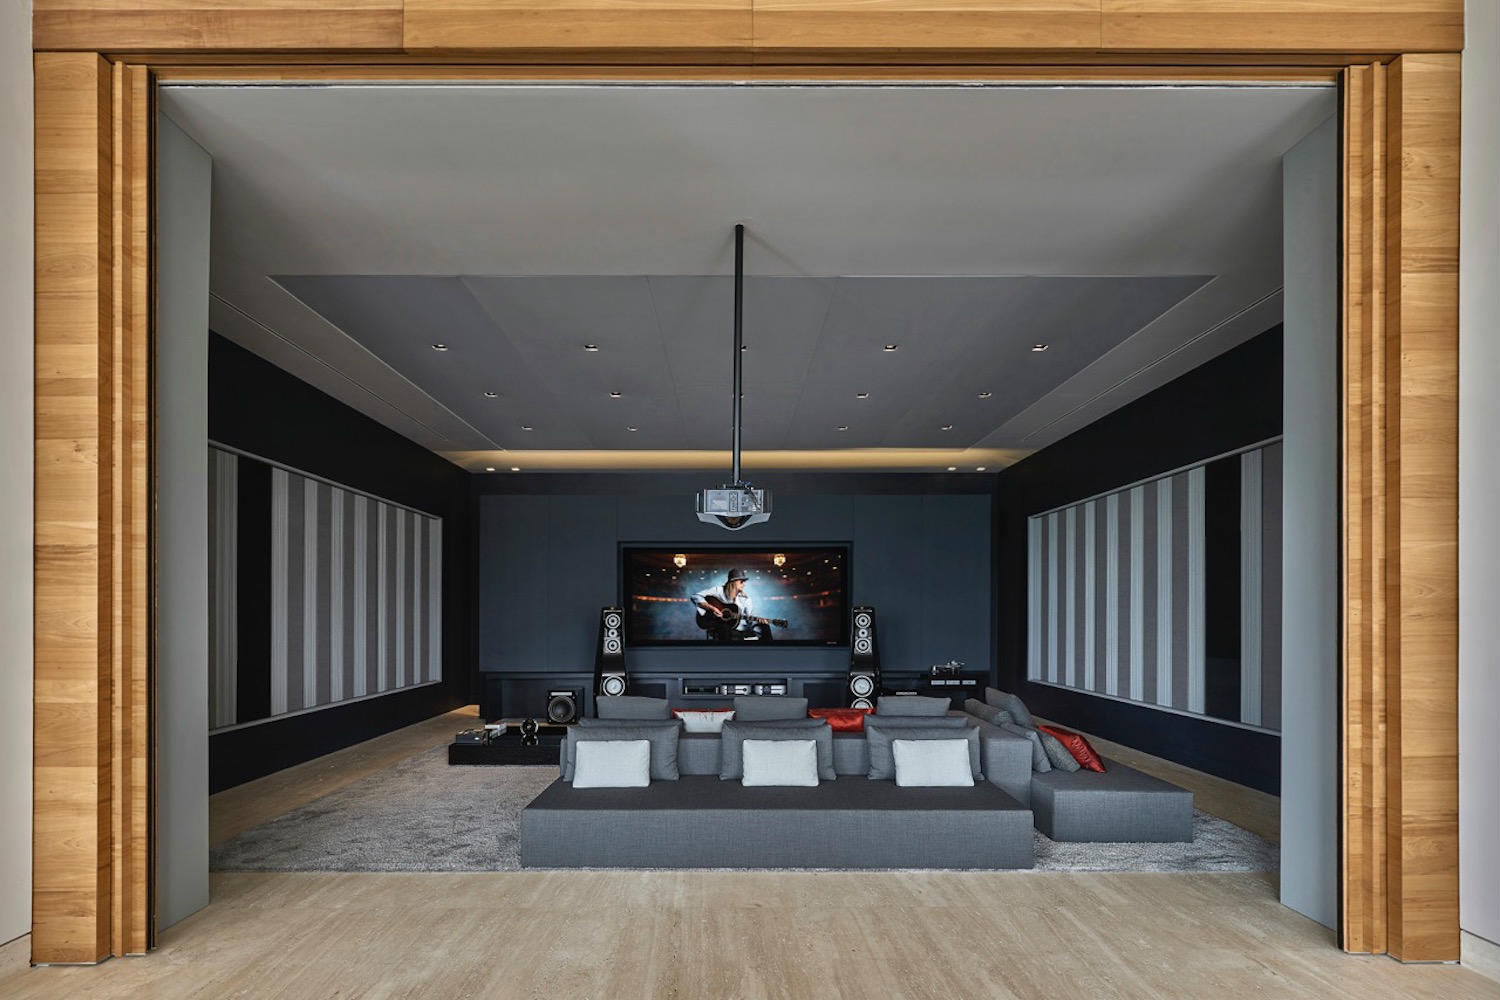 Theater room from rear doors. While open at The Ultimate Home Theater in Belo Horizonte, Brazil